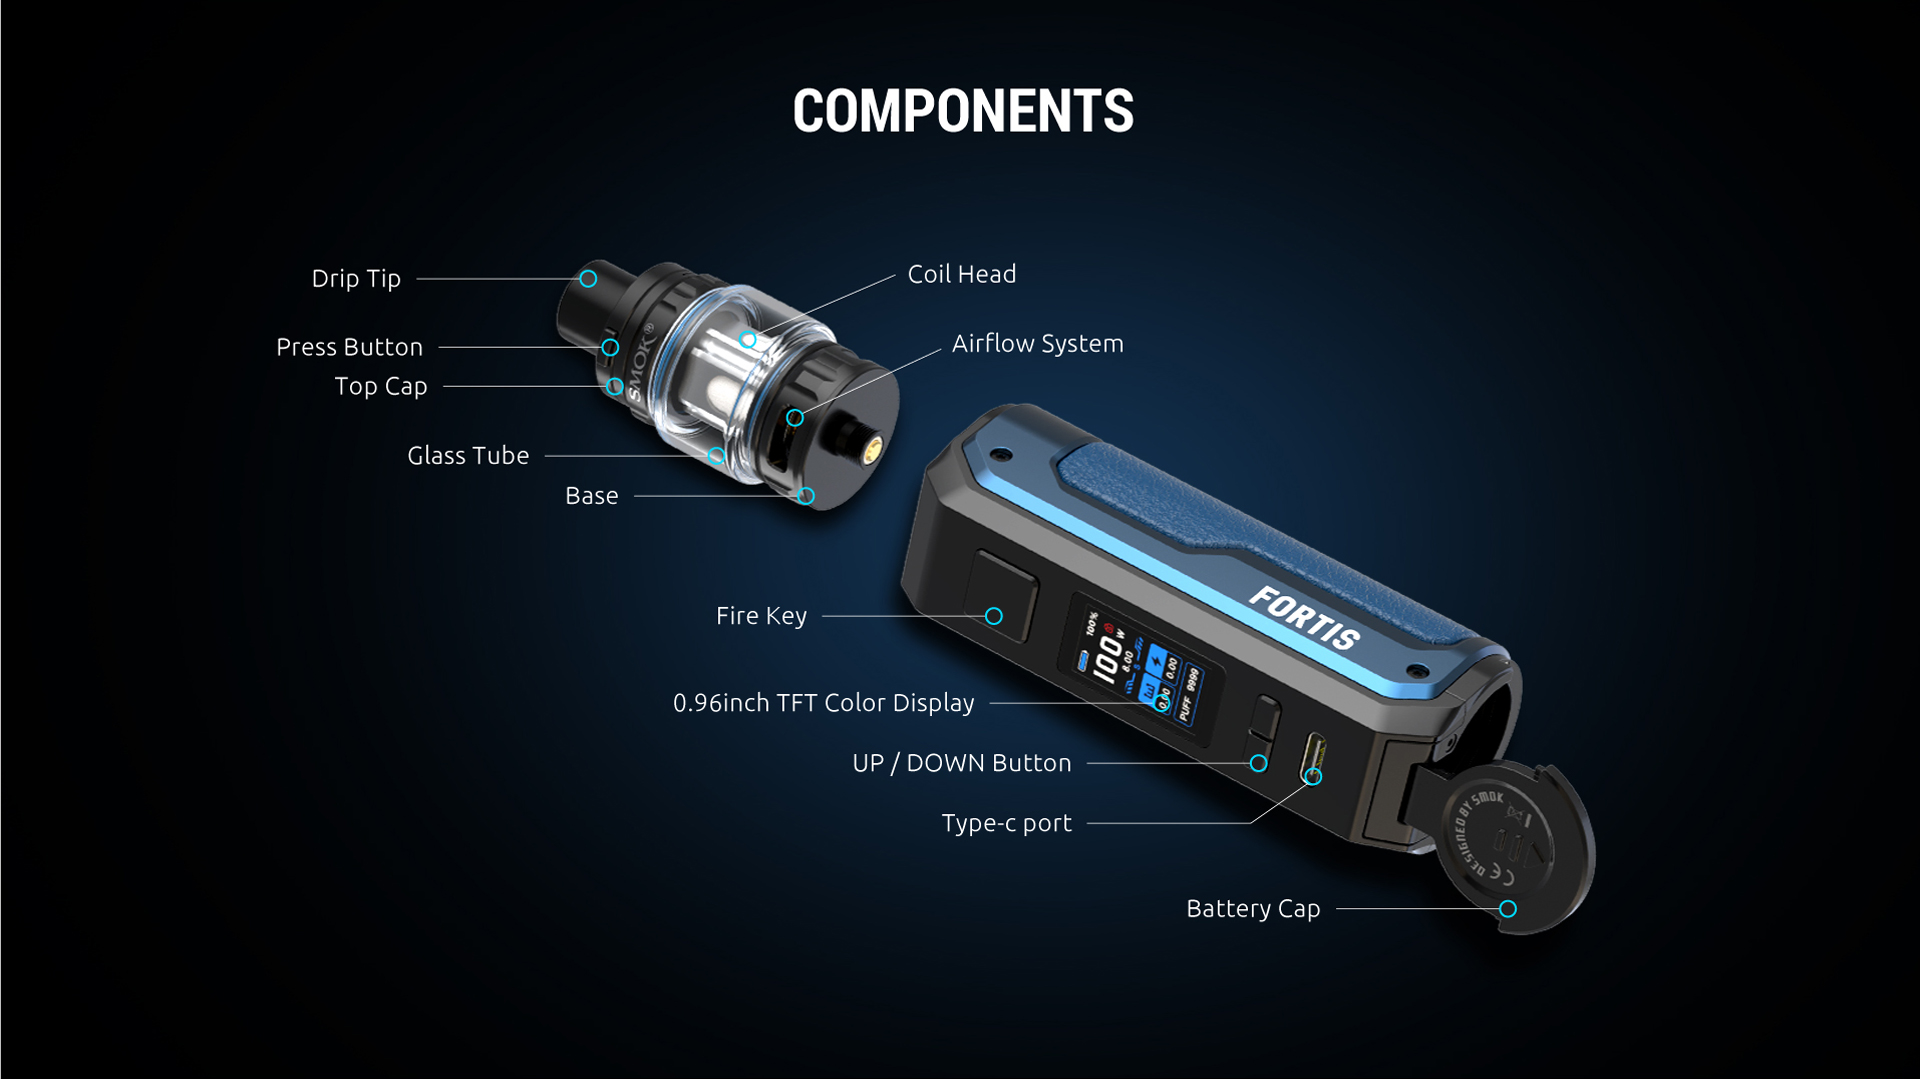 SMOK FORTIS SPECIFICATIONS